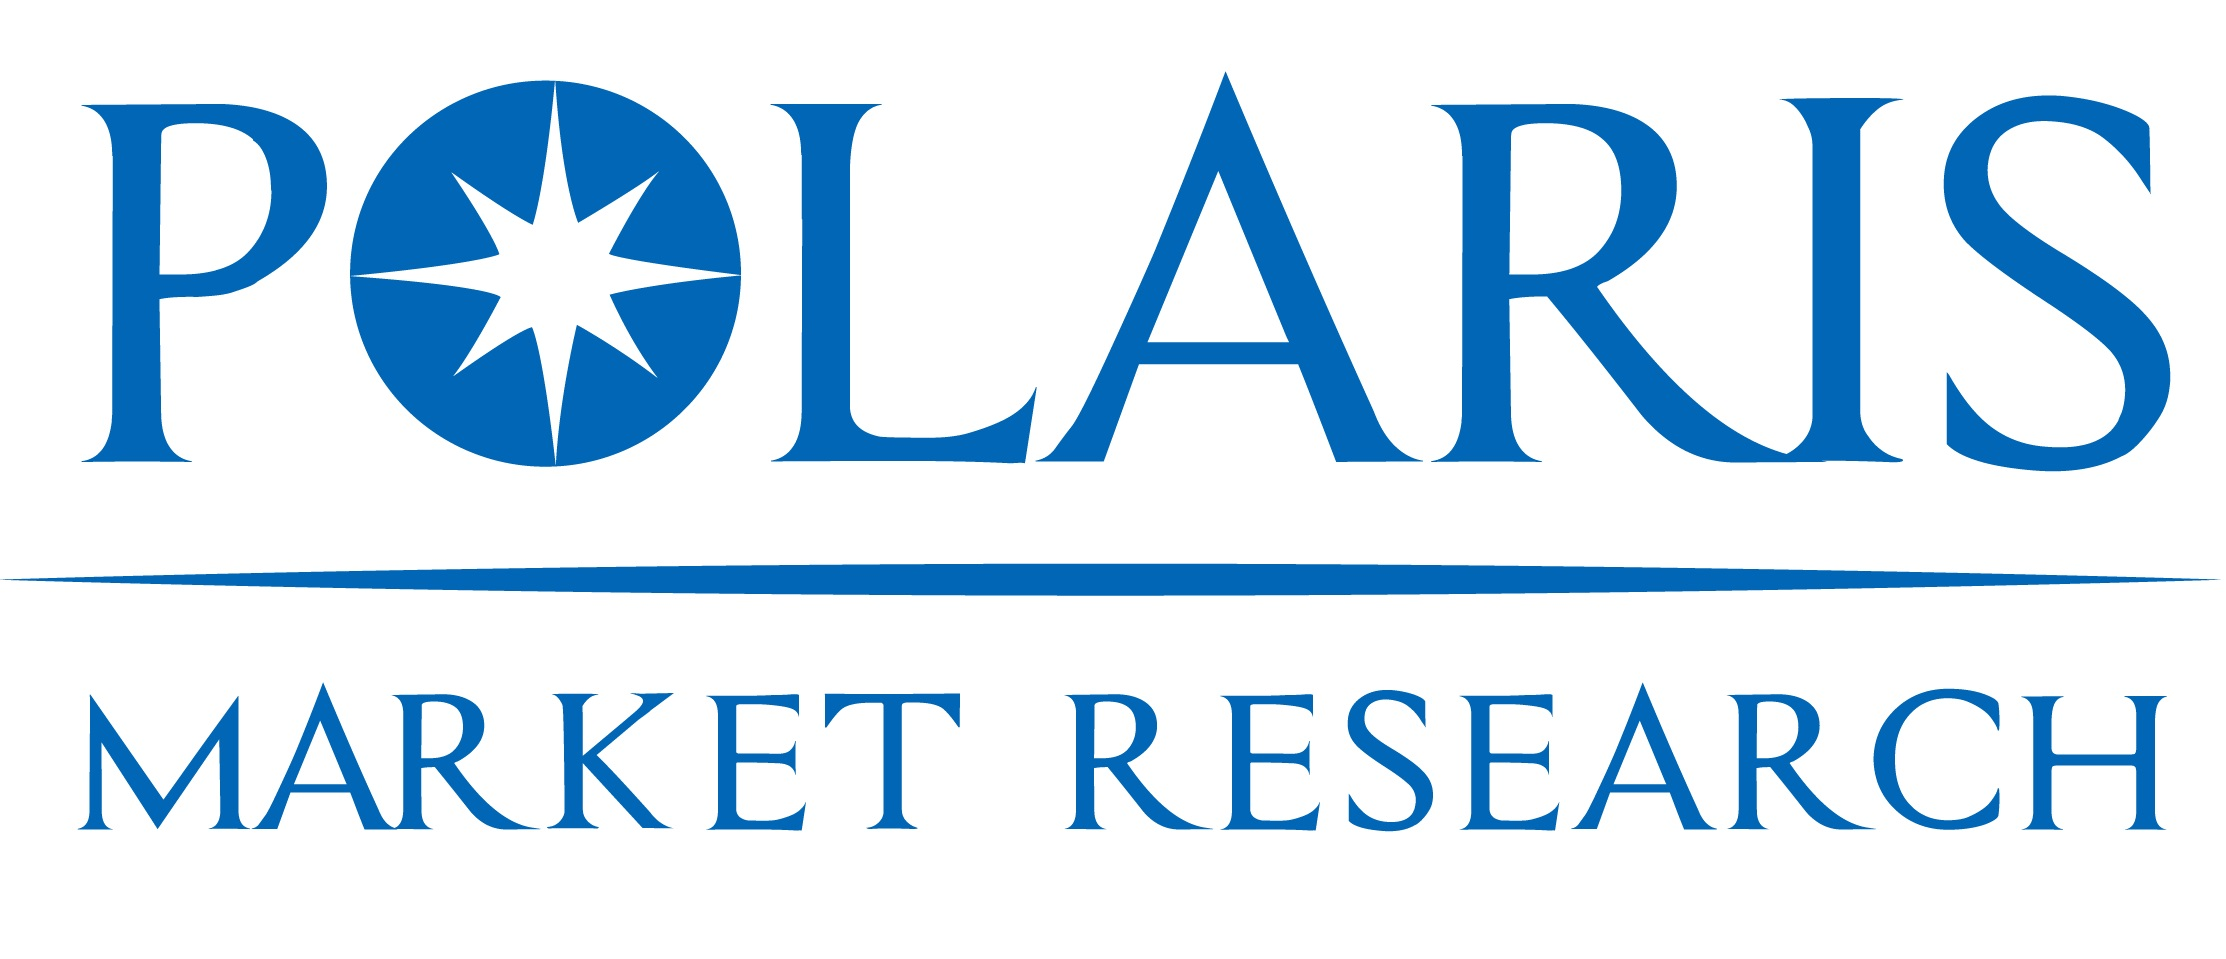 Phytosterols Market Size Worth $1.38 Billion By 2028 | CAGR: 8.4% : Exclusive Study by Polaris Market Research